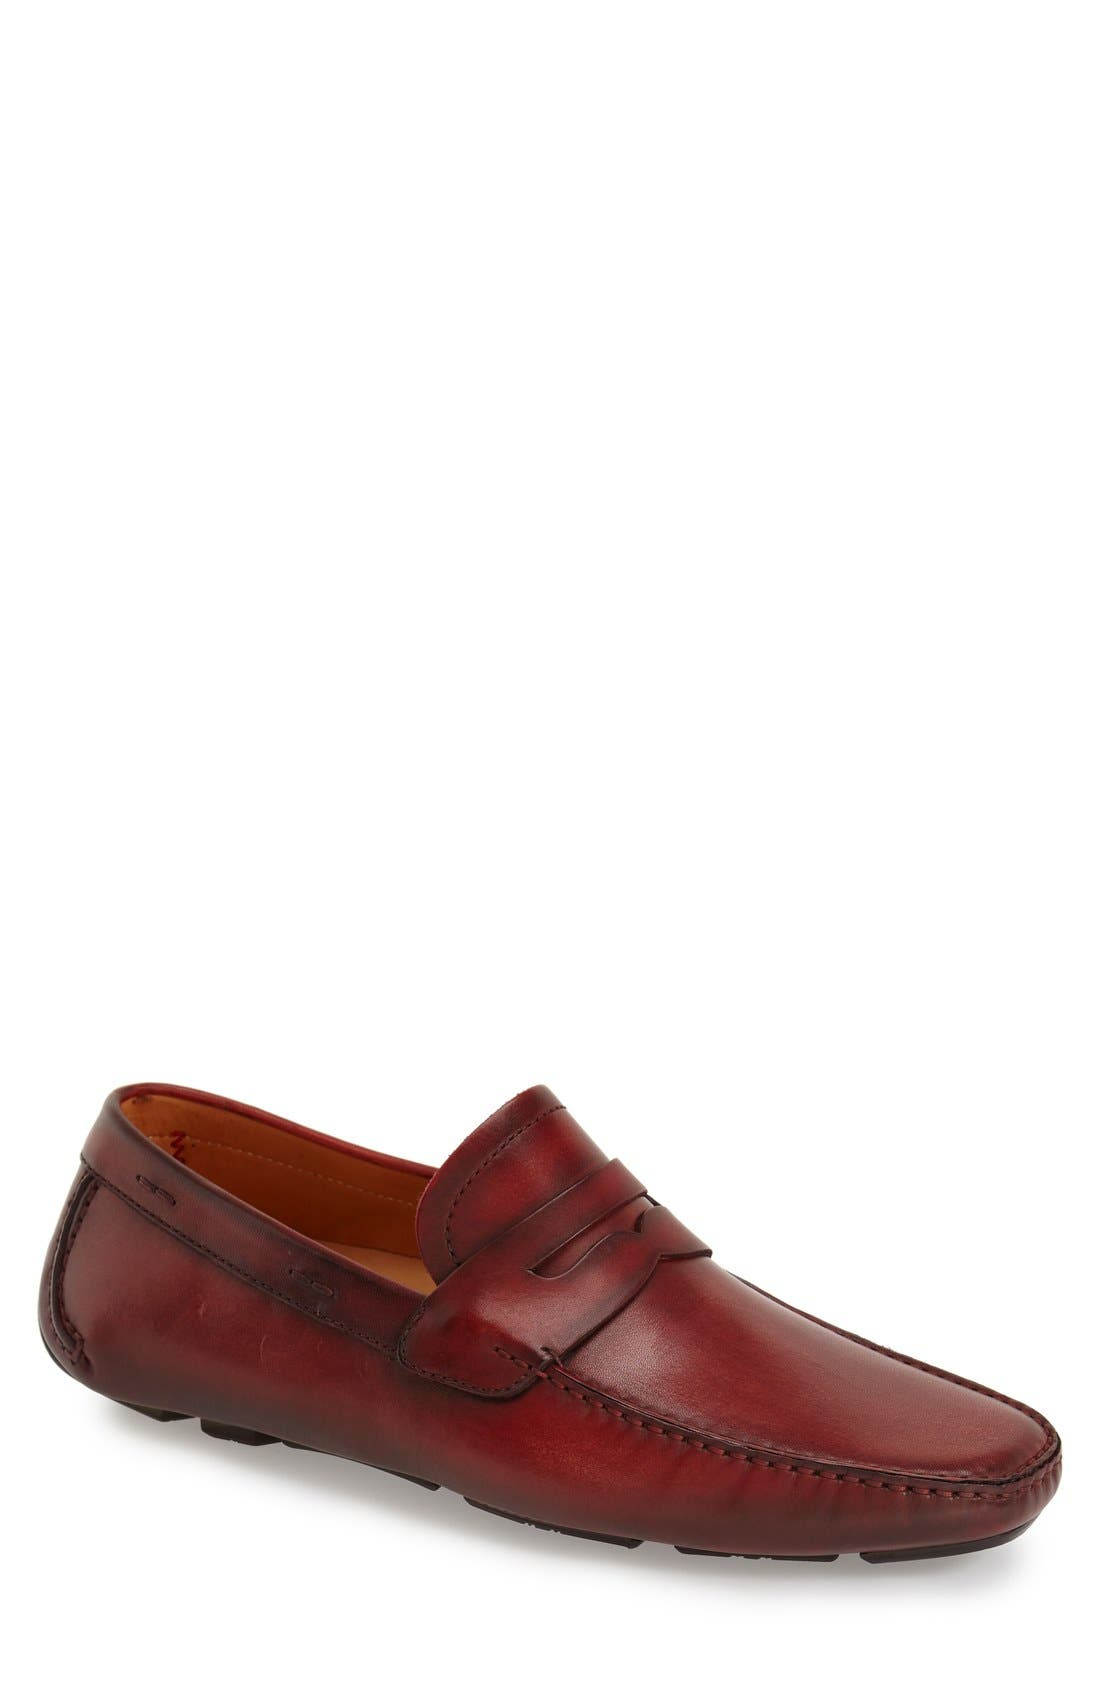 'Dylan' Leather Driving Shoe,                             Main thumbnail 6, color,